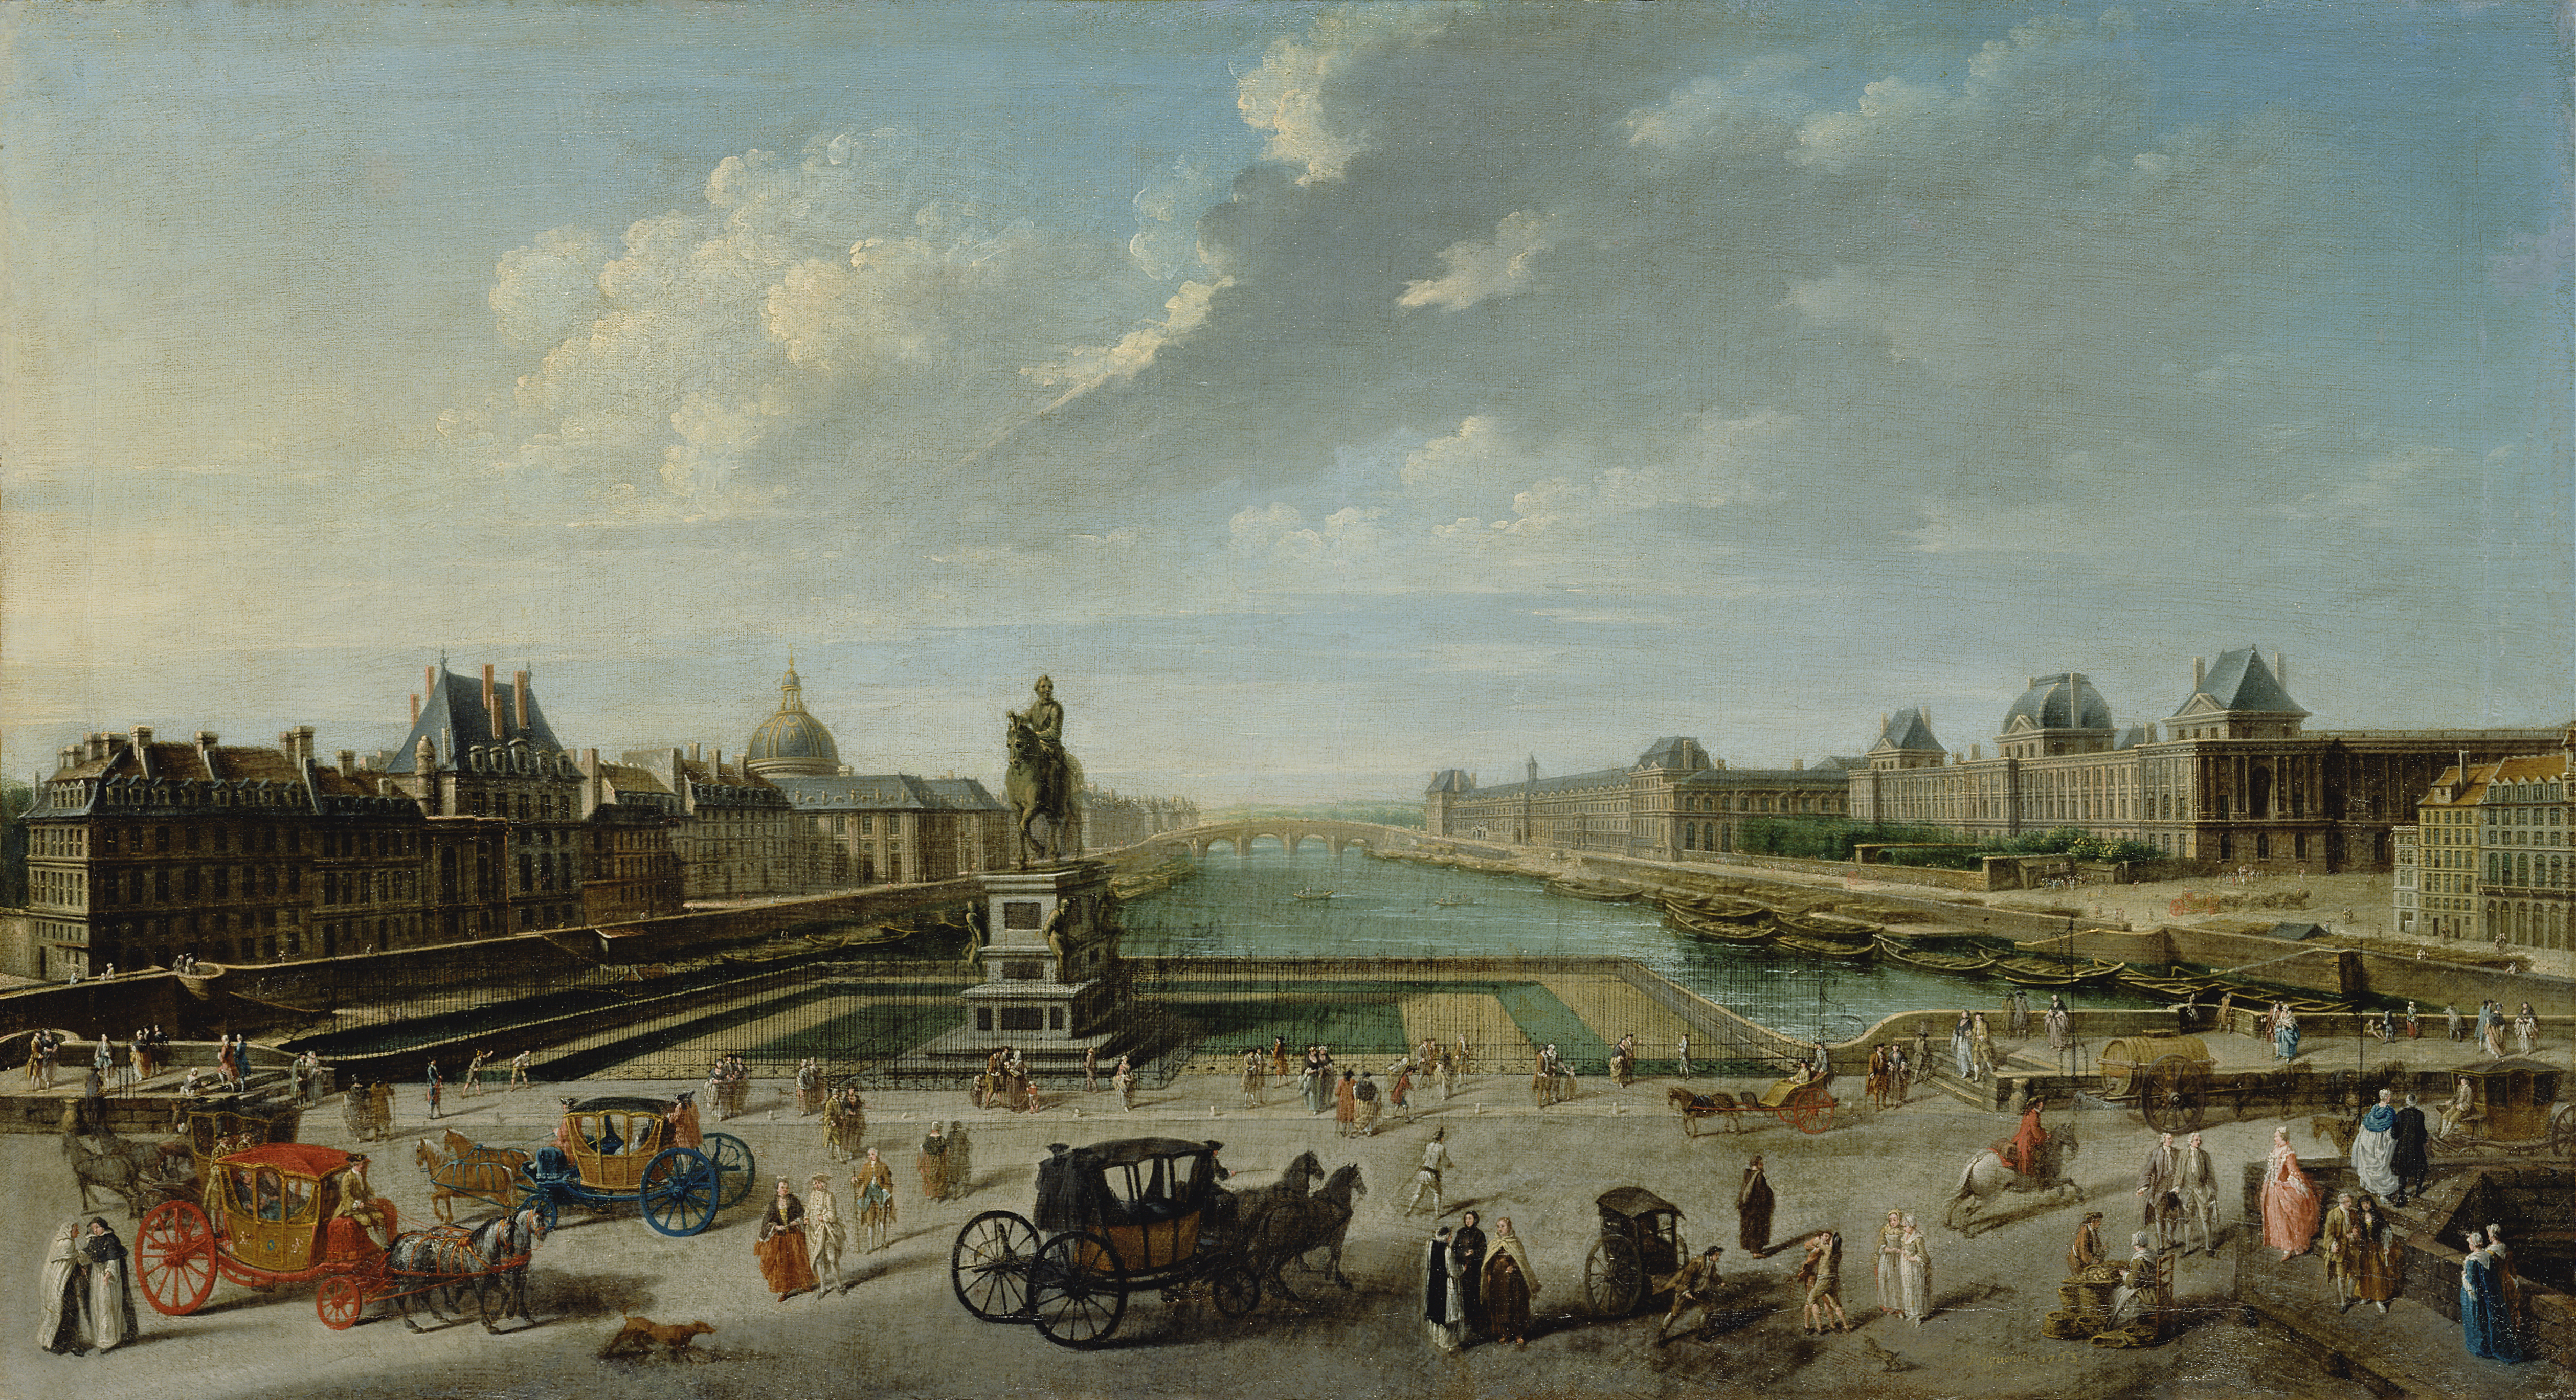 https://upload.wikimedia.org/wikipedia/commons/a/a6/Nicolas-Jean-Baptiste_Raguenet%2C_A_View_of_Paris_from_the_Pont_Neuf_-_Getty_Museum.jpg